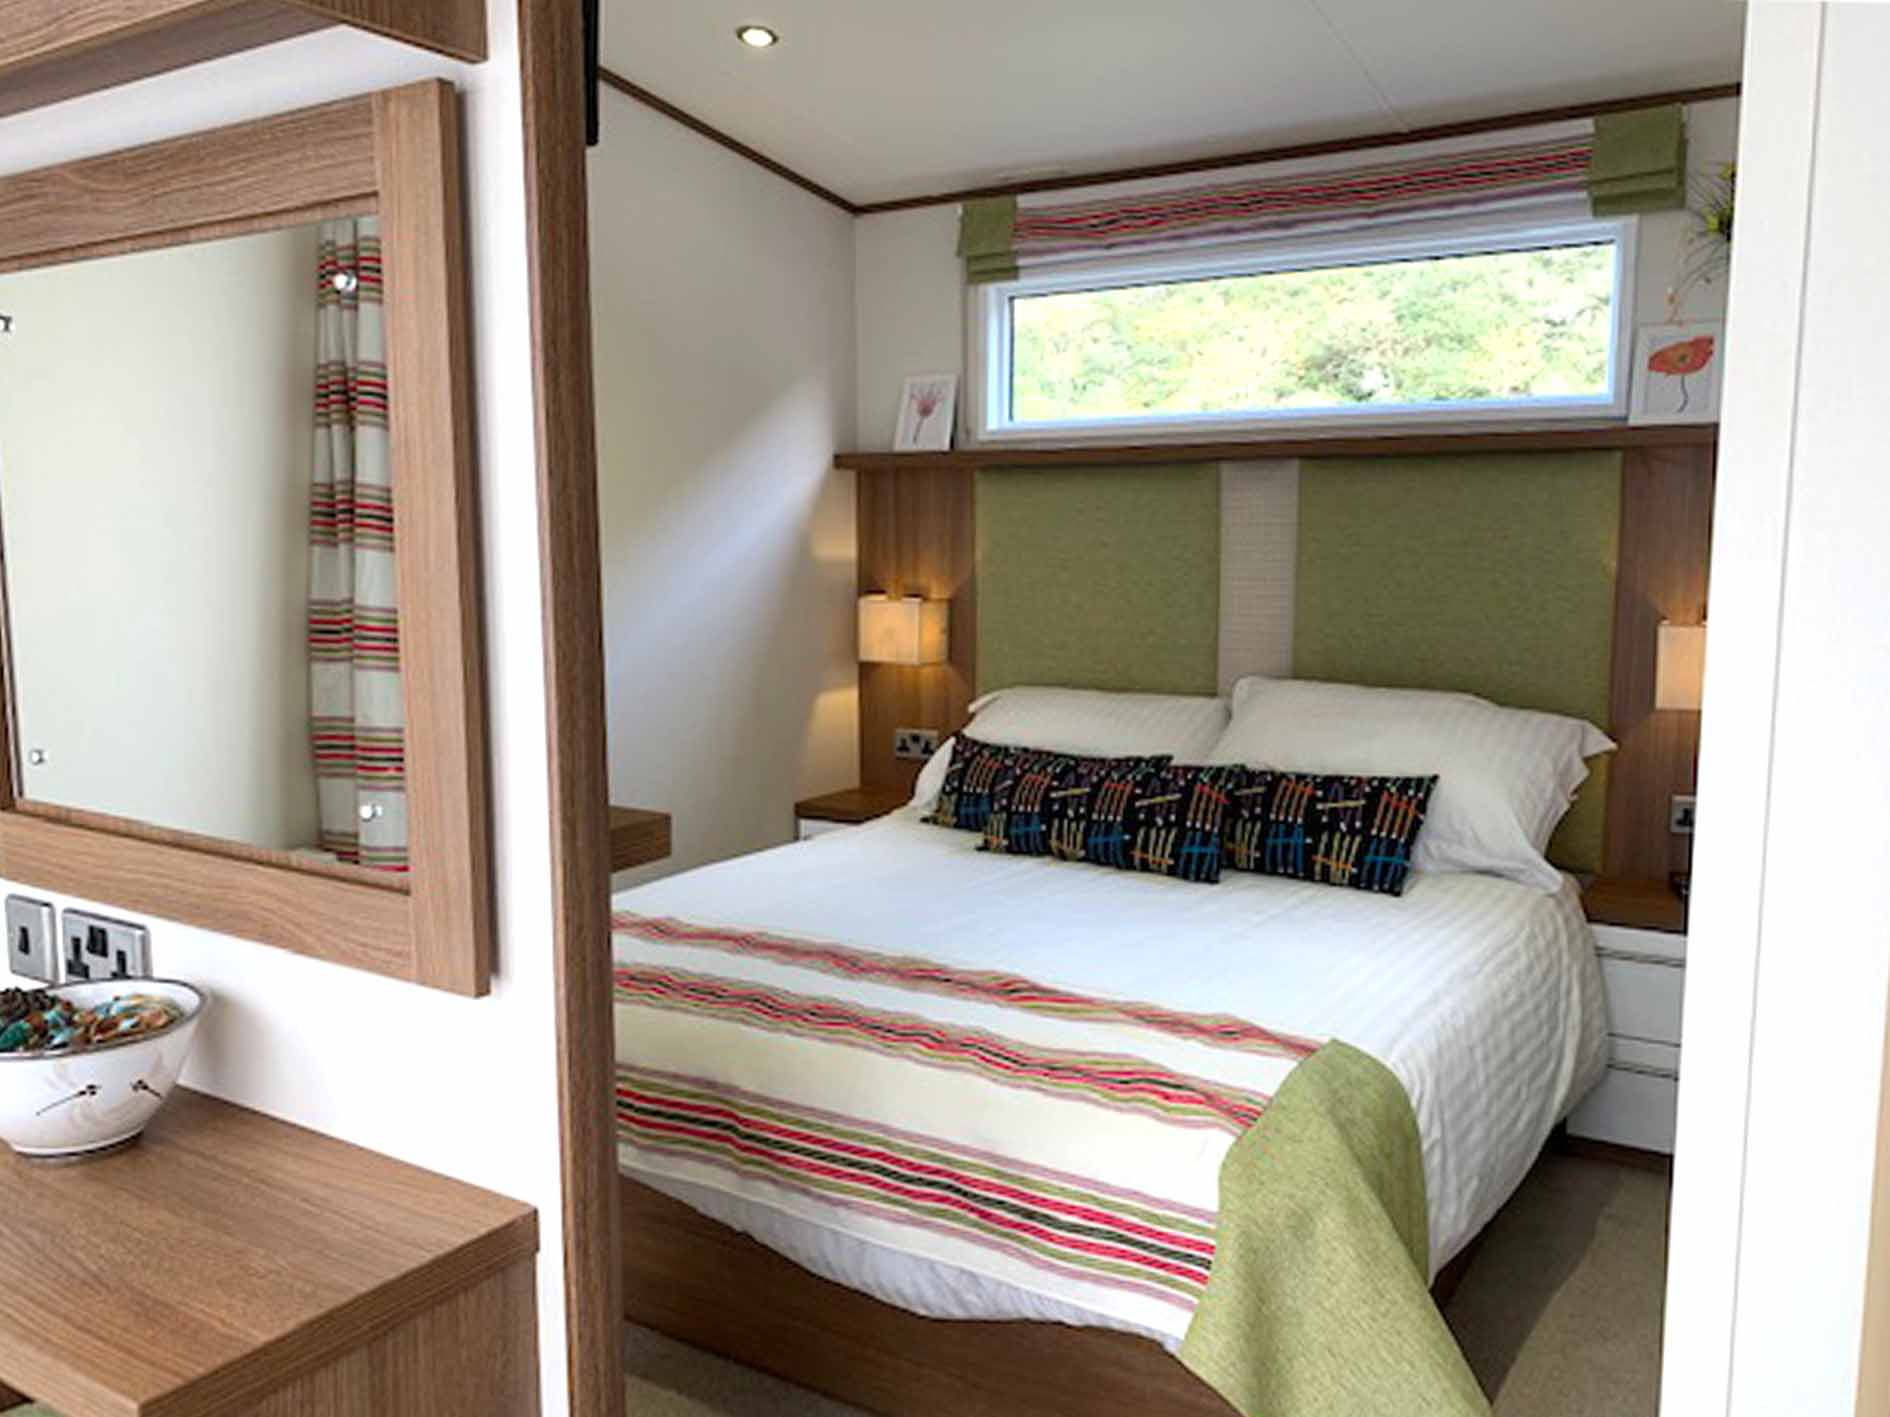 Luxury Lodges, Luxury Holiday Accommodation, Tresaith, Wales